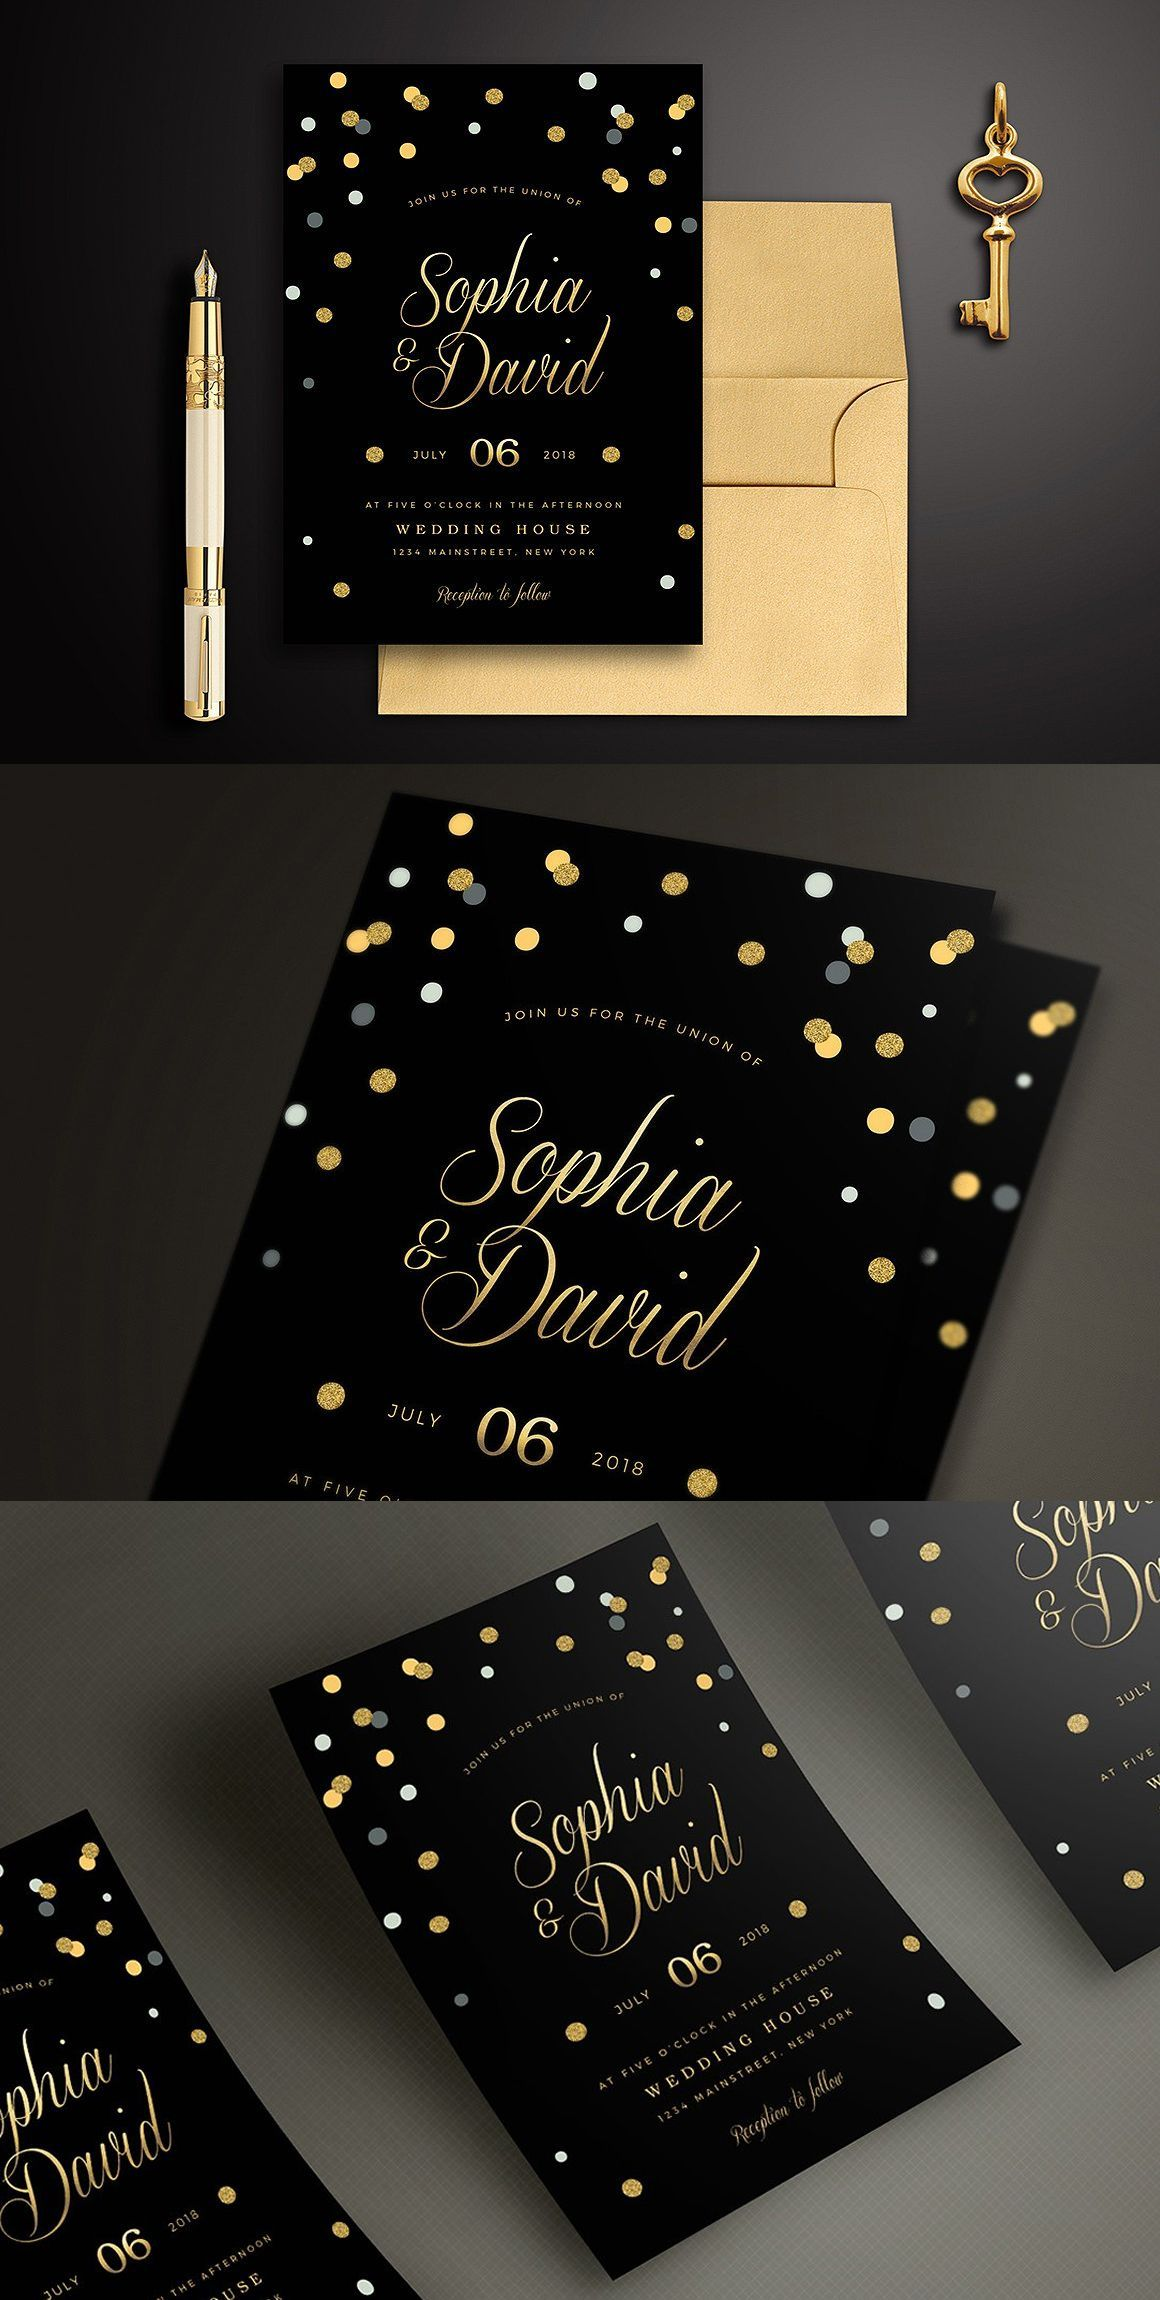 8 Awesome Invitation Card Template Psd Gold Wedding Invitations Wedding Invitation Cards Wedding Invitation Card Template